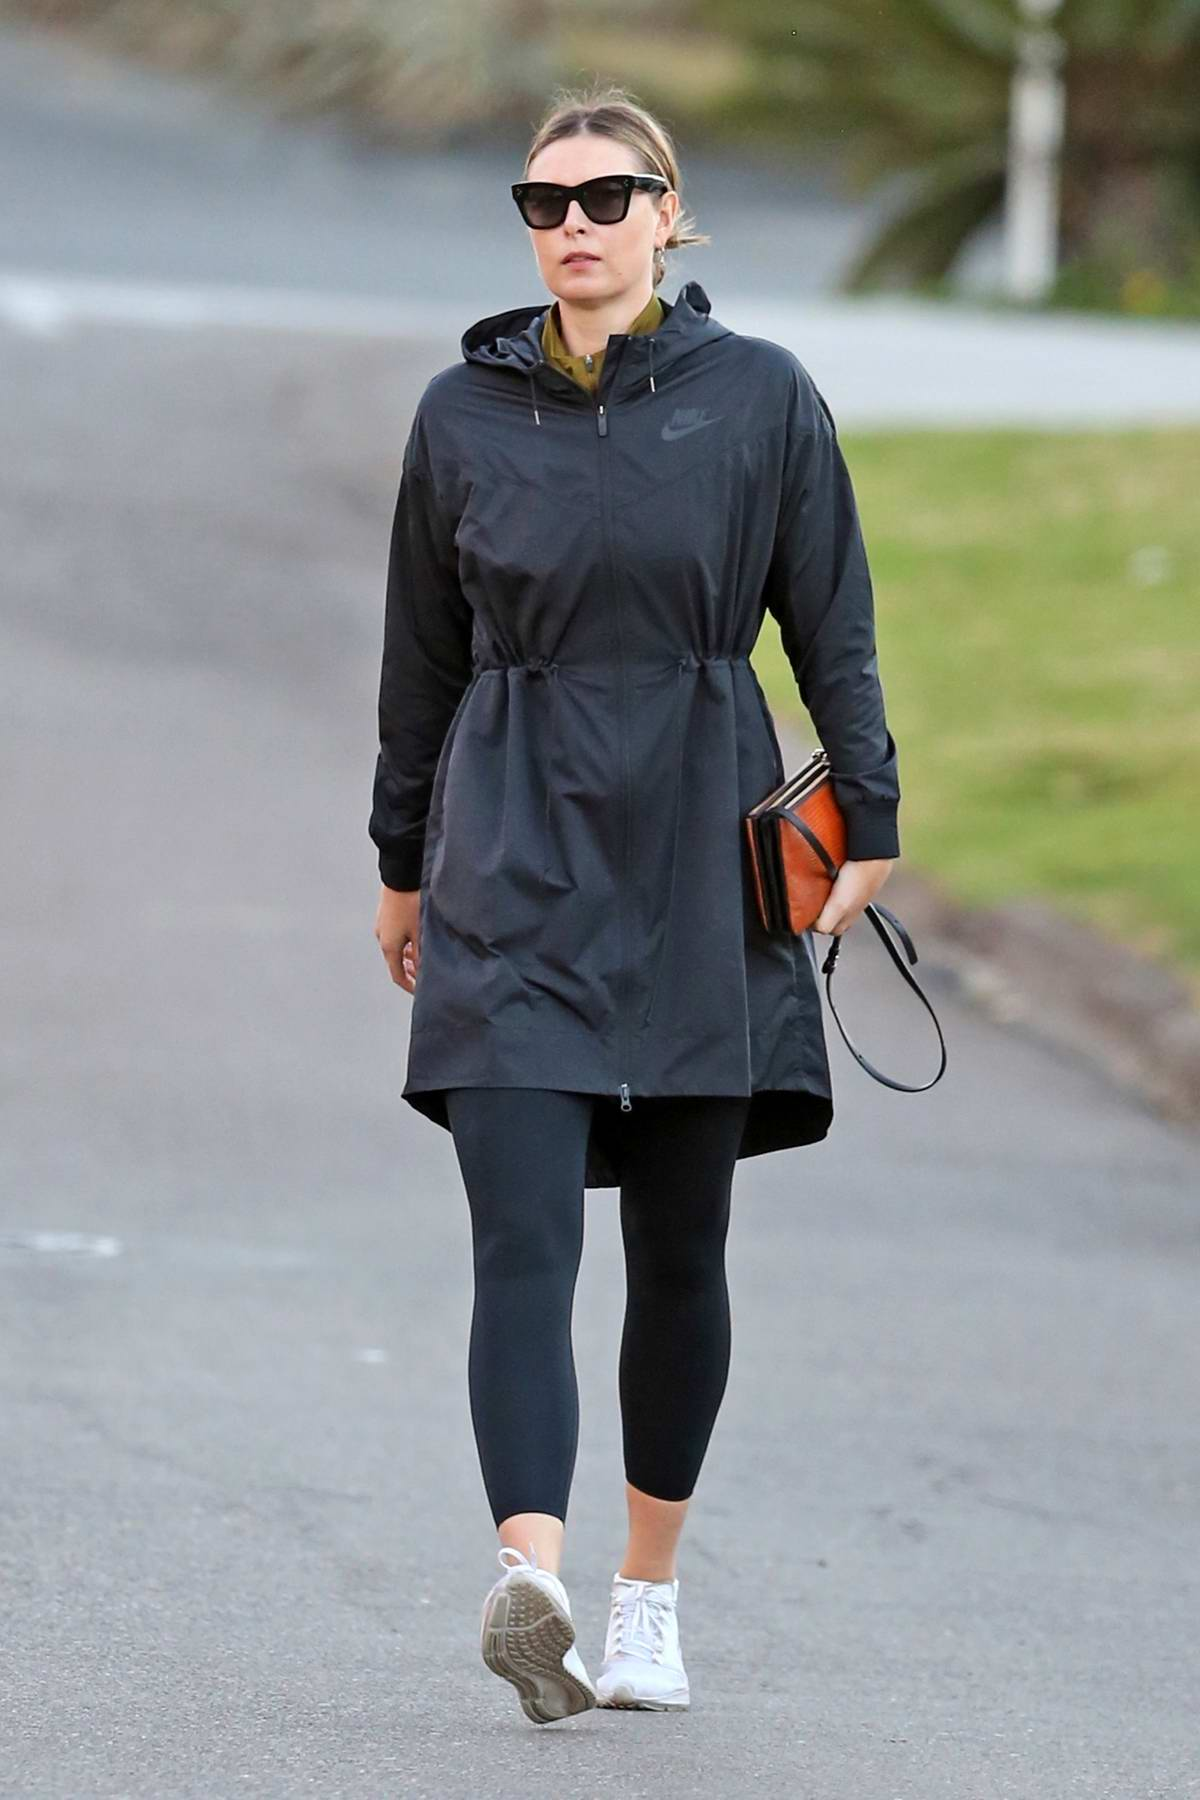 Maria Sharapova seen for the first time since her engagement as she leaves a private workout in Manhattan Beach, California